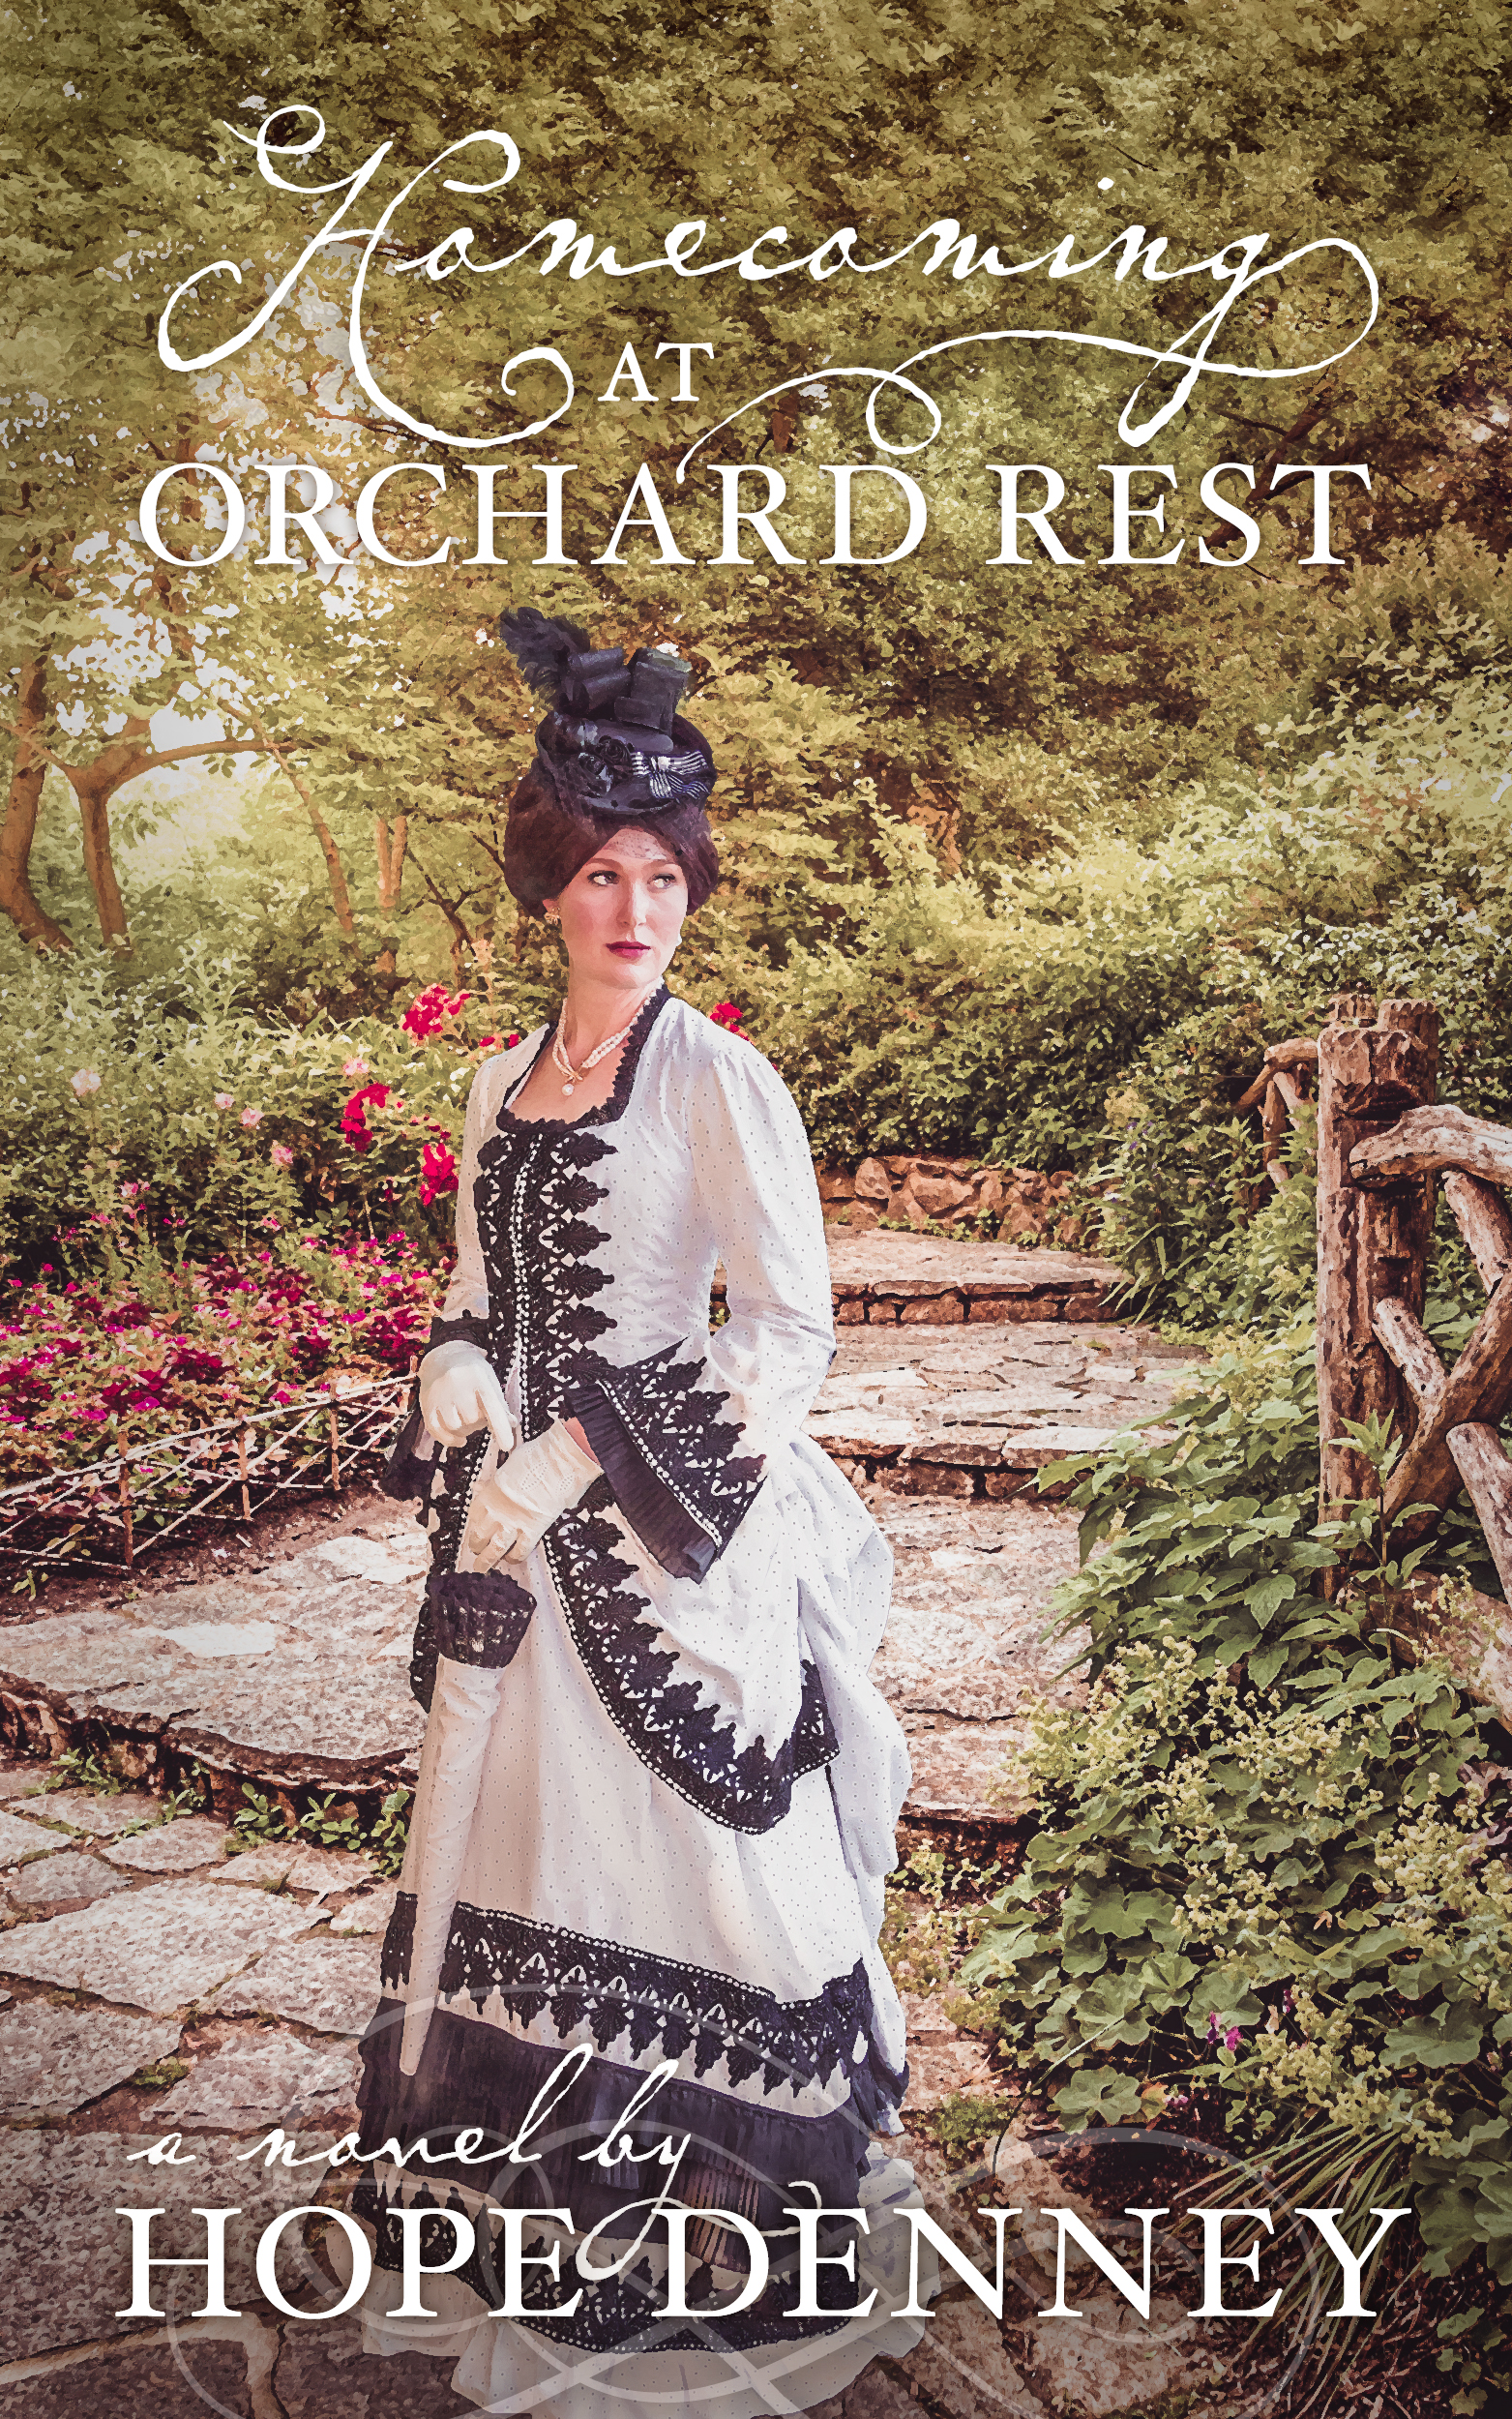 Homecoming at Orchard Rest (Orchard Rest Historical Southern Fiction Series, Book 5)